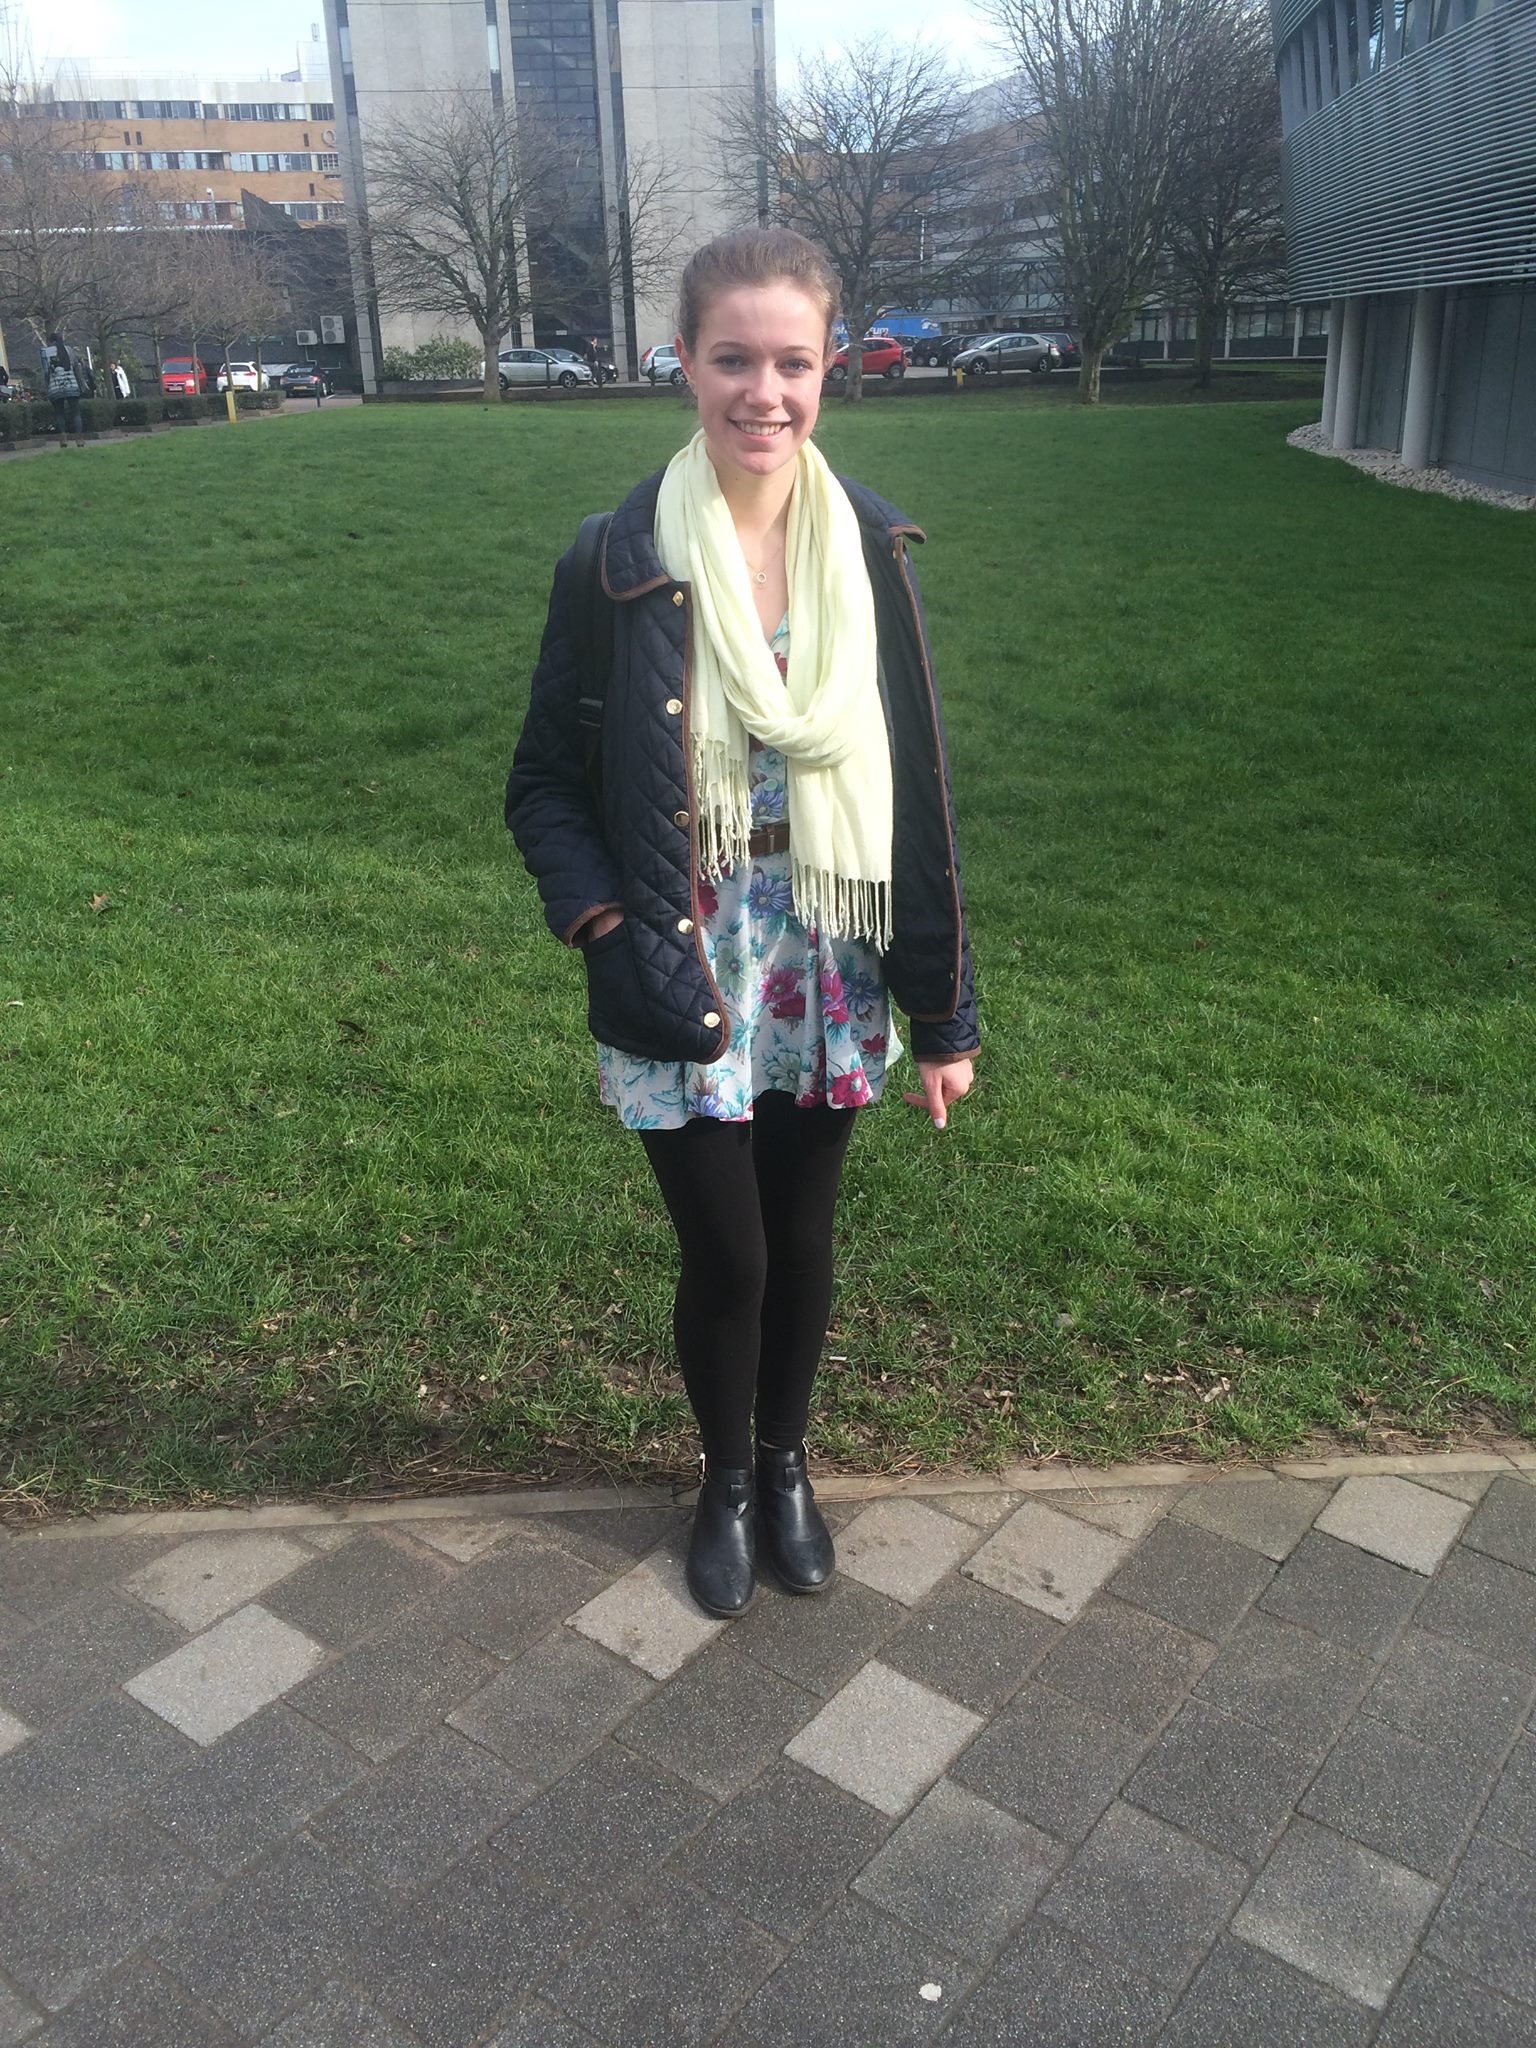 Maddy Pickles, 2nd Year, Psychology